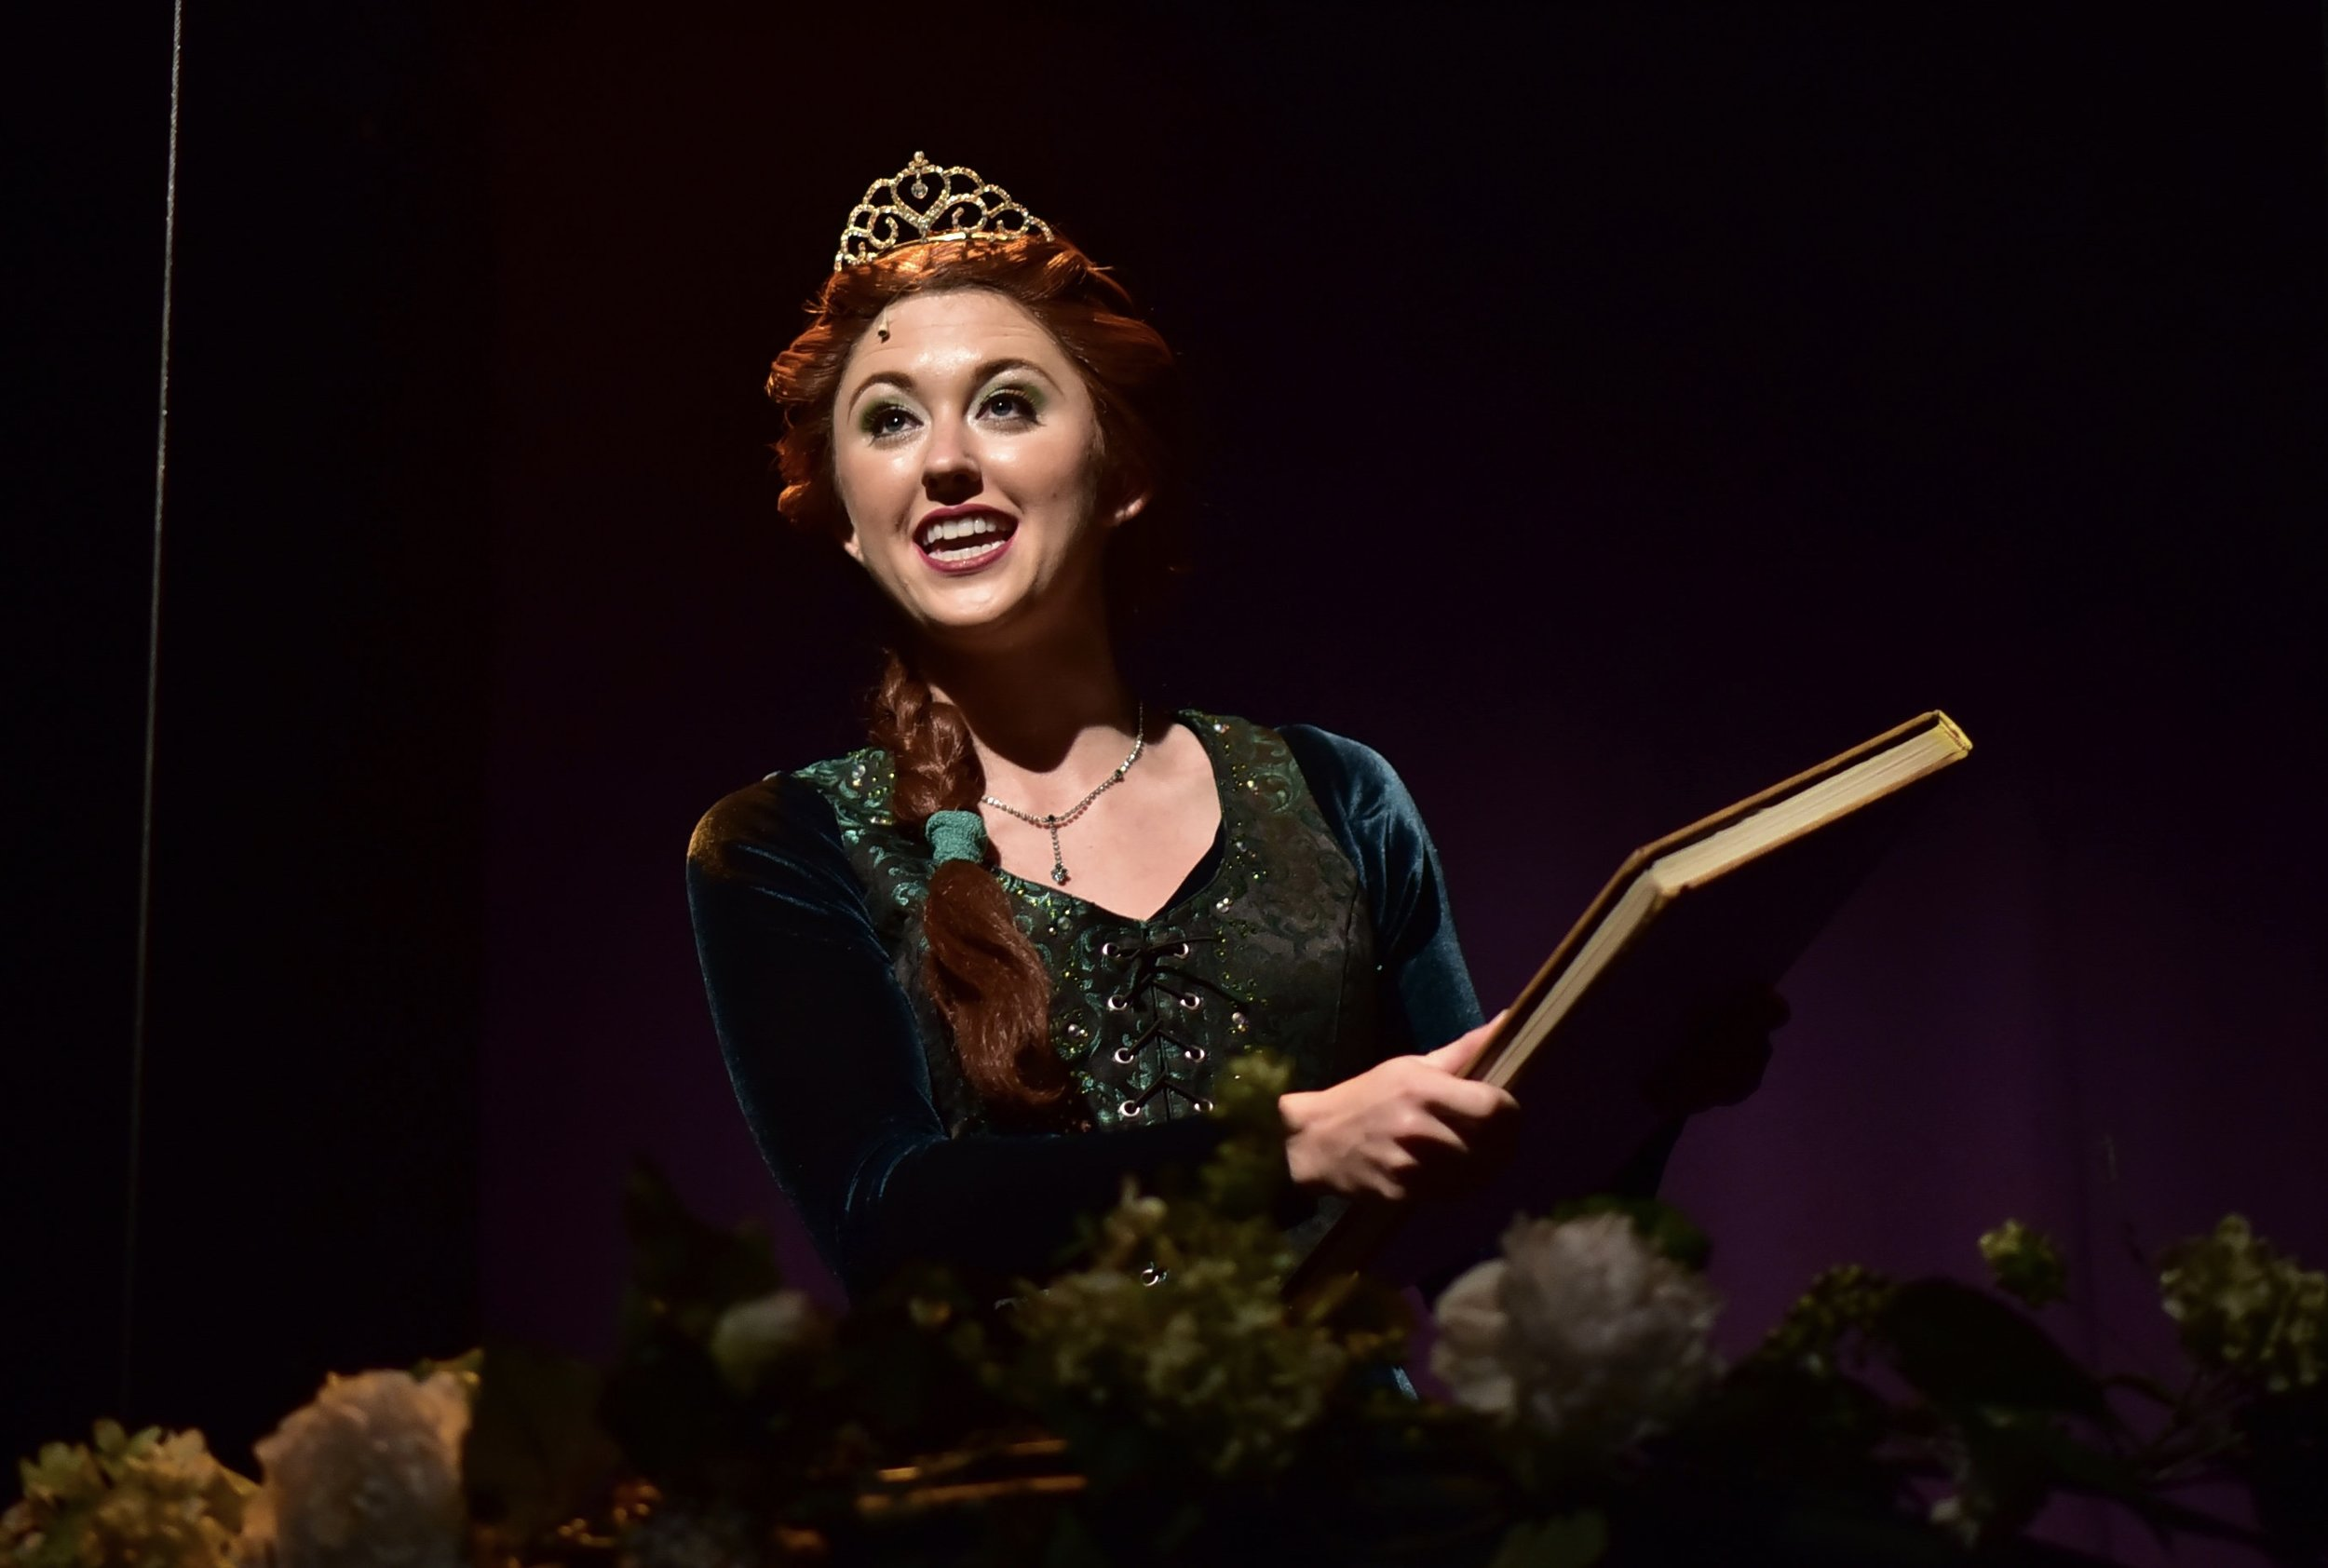 """The Herald Bulletin - """"You won't find a one-dimensional damsel in distress in Emily Grace Tucker's role as Princess Fiona. She's a fiery female who values tradition, but has her own complexities that lead her down another path. She holds her own alongside the boys, and her singing stands out""""."""